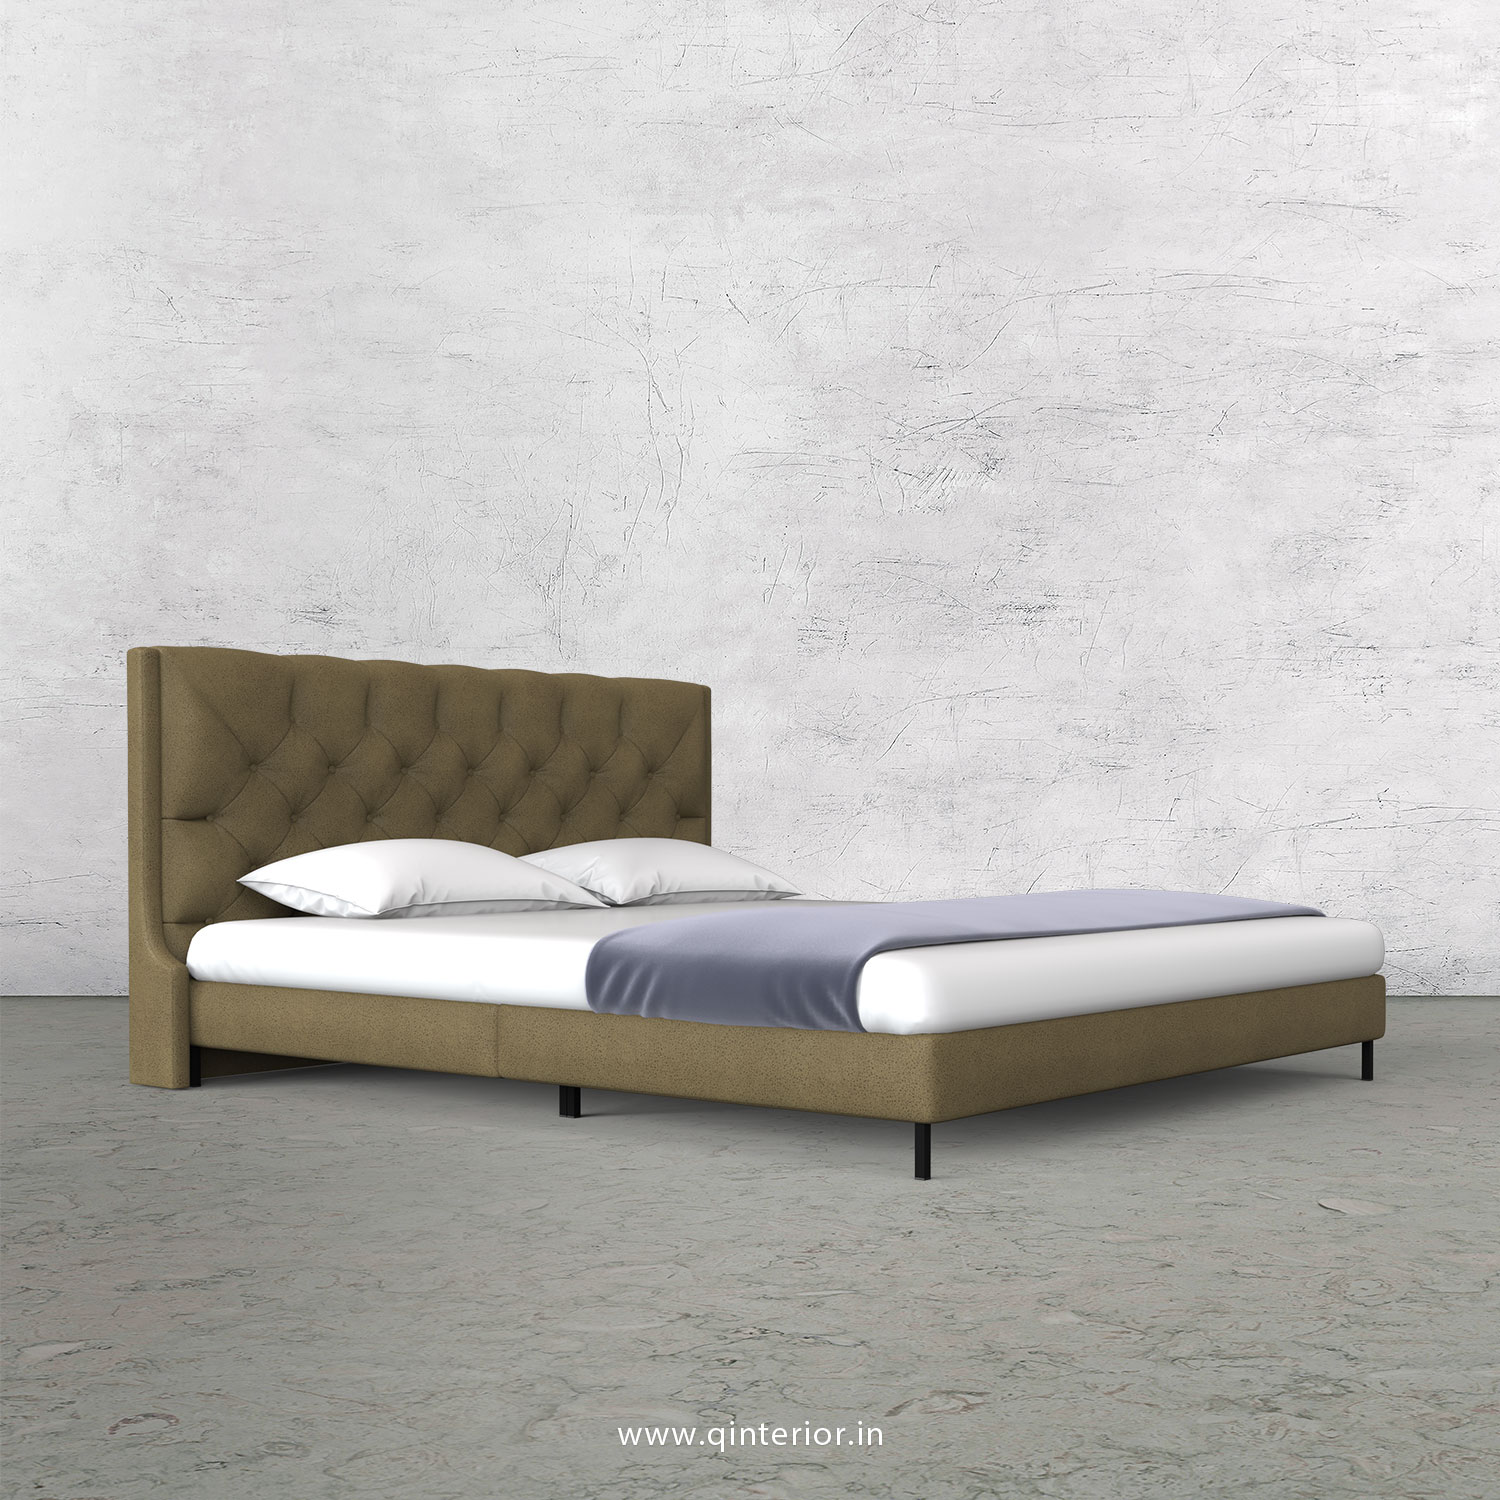 Scorpius King Size Bed in Fab Leather Fabric - KBD003 FL01